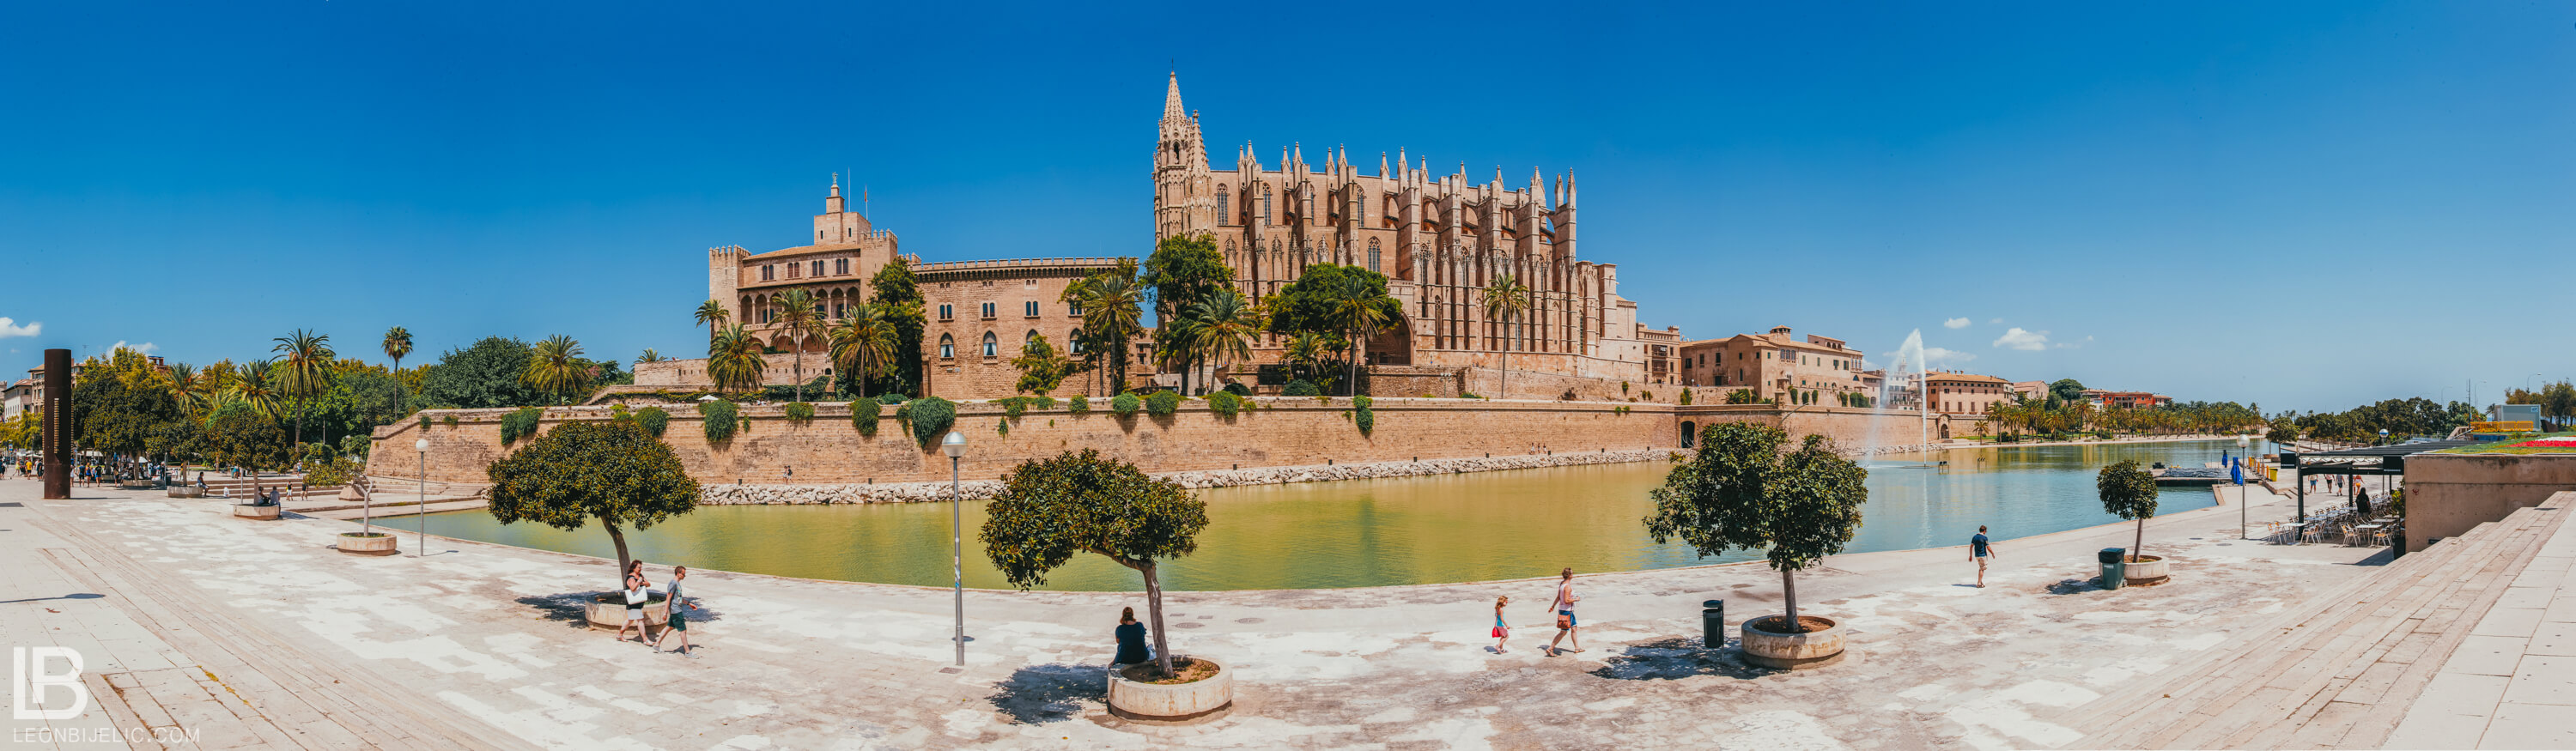 SPAIN: MALLORCA ISLAND / PALMA / PORTO CRISTO / CAVES DEL DRACH / PHOTOS / PHOTOGRAPHS / WALLPAPER / LEON BIJELIC / PHOTOGRAPHY / PHOTOGRAPHER / VOCATION / HOTEL / The Cathedral of Santa Maria of Palma / ARCHITECTURE